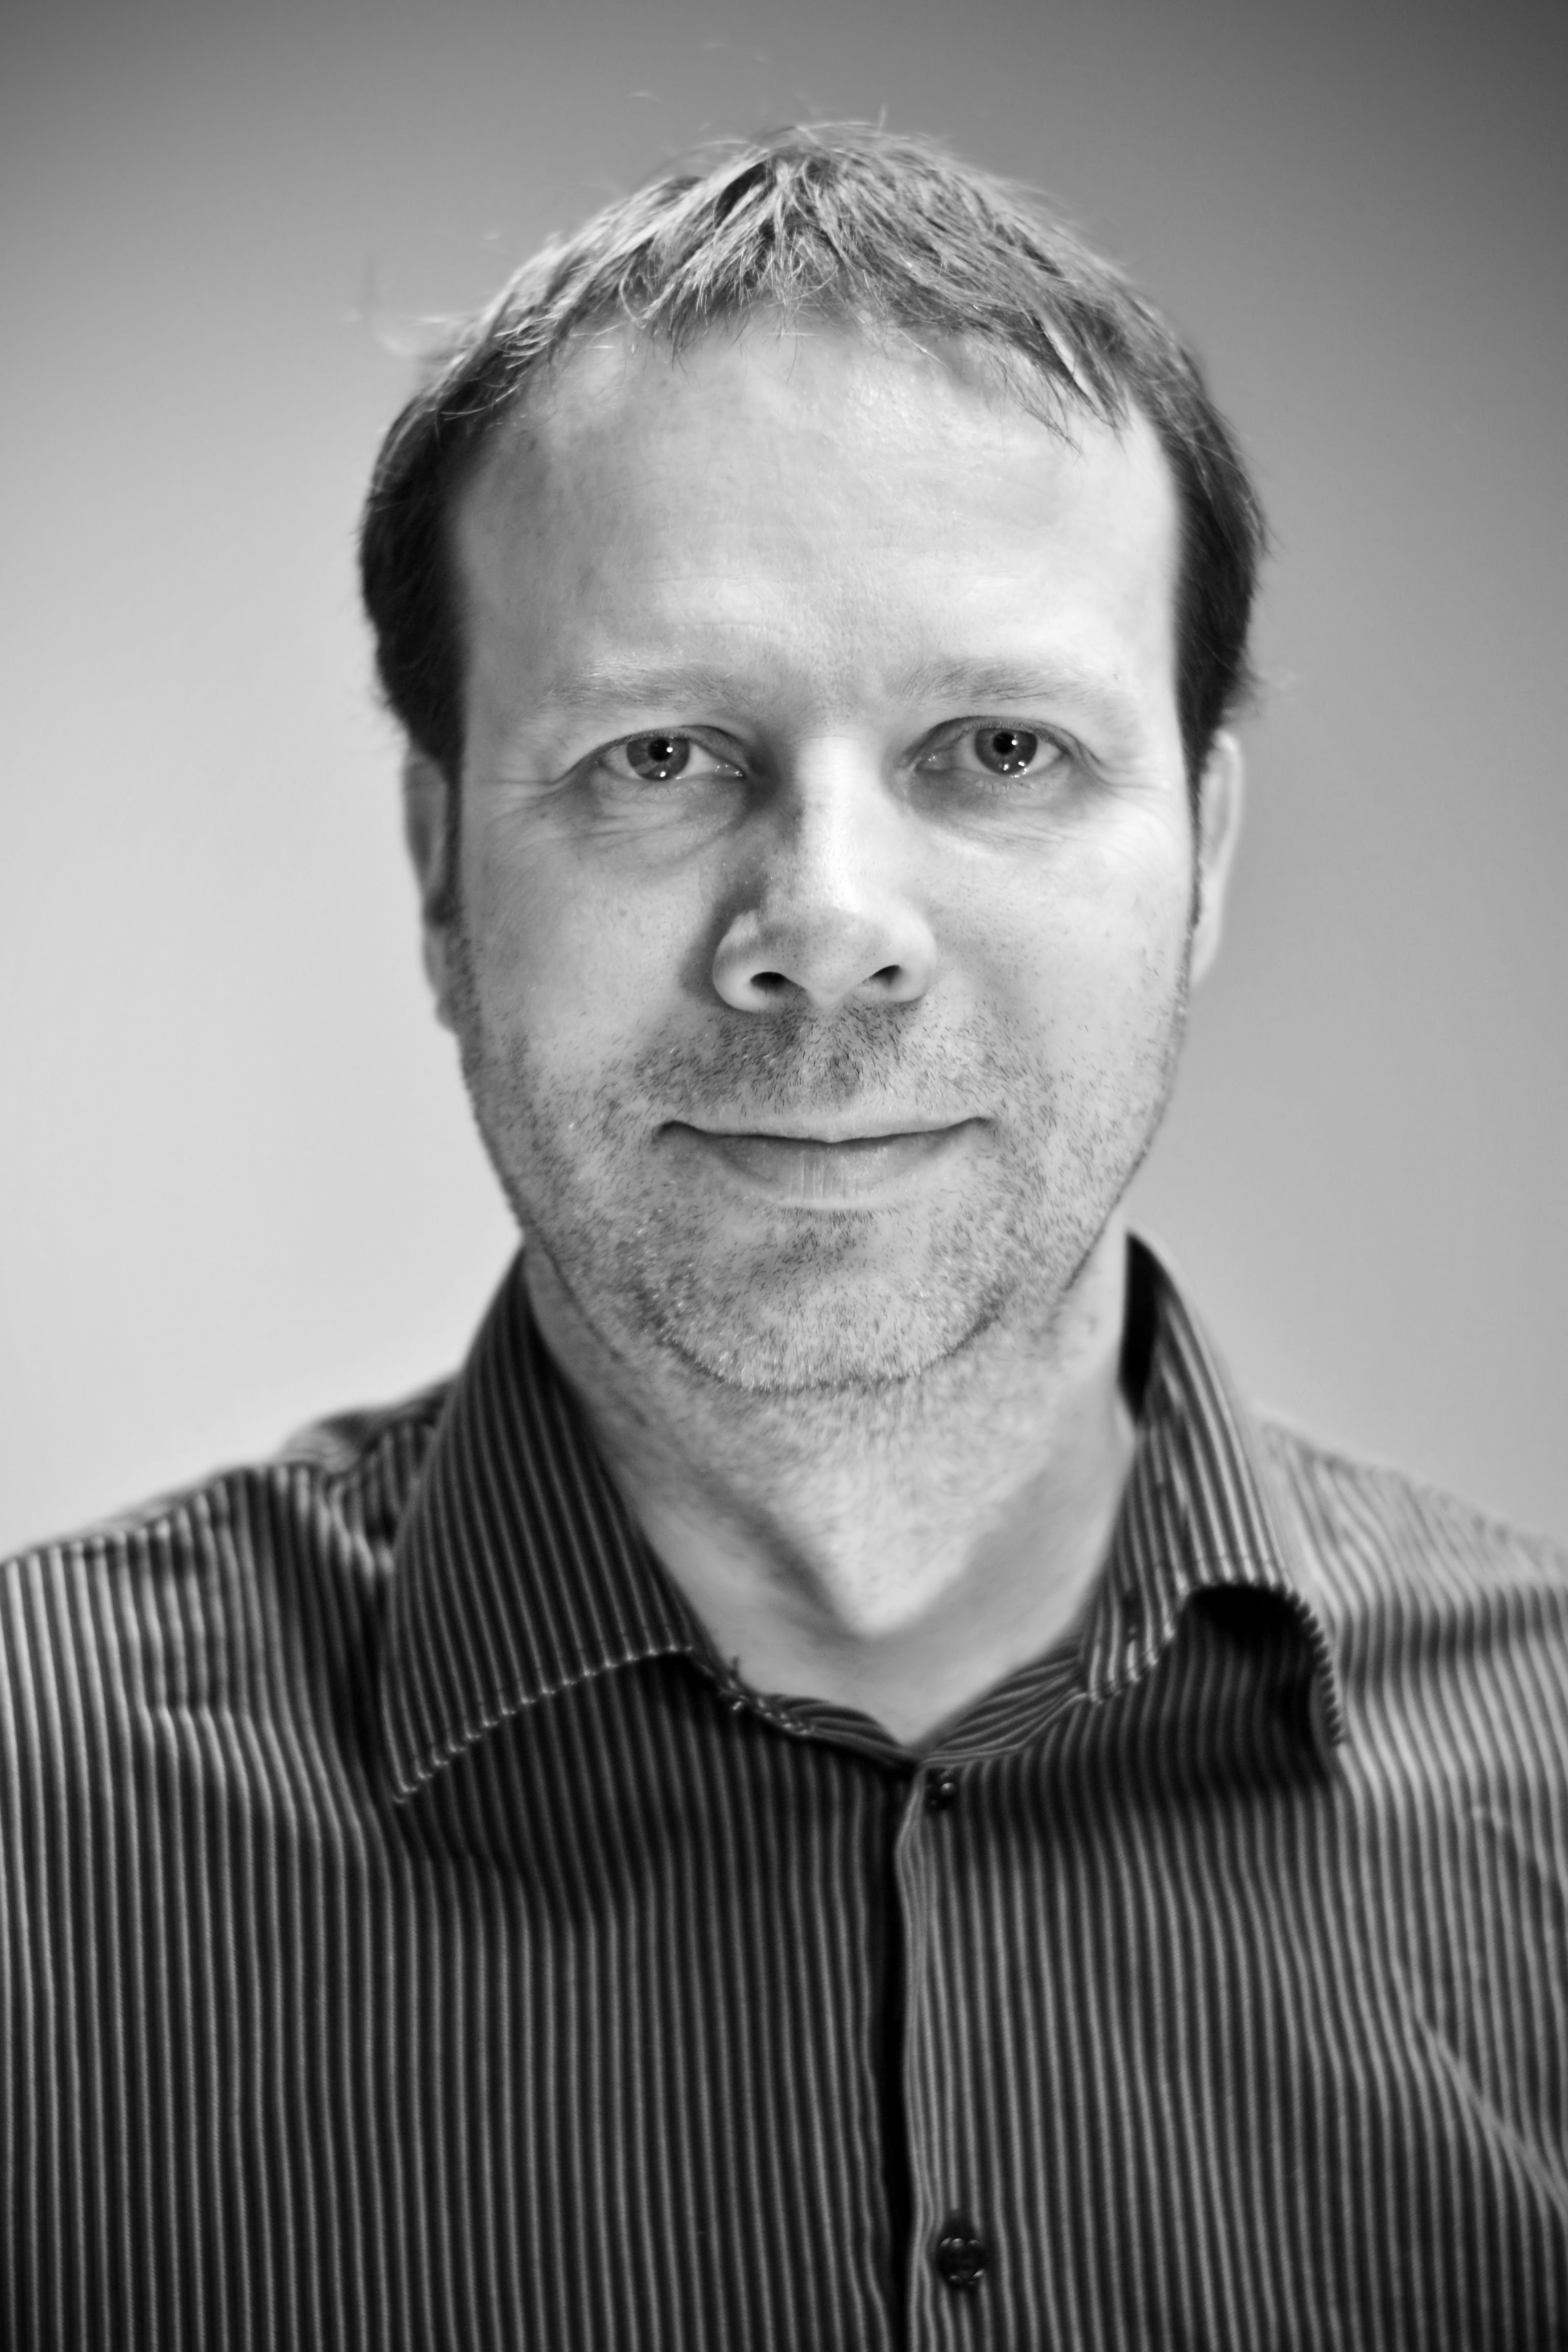 Photo of Juha Herkman